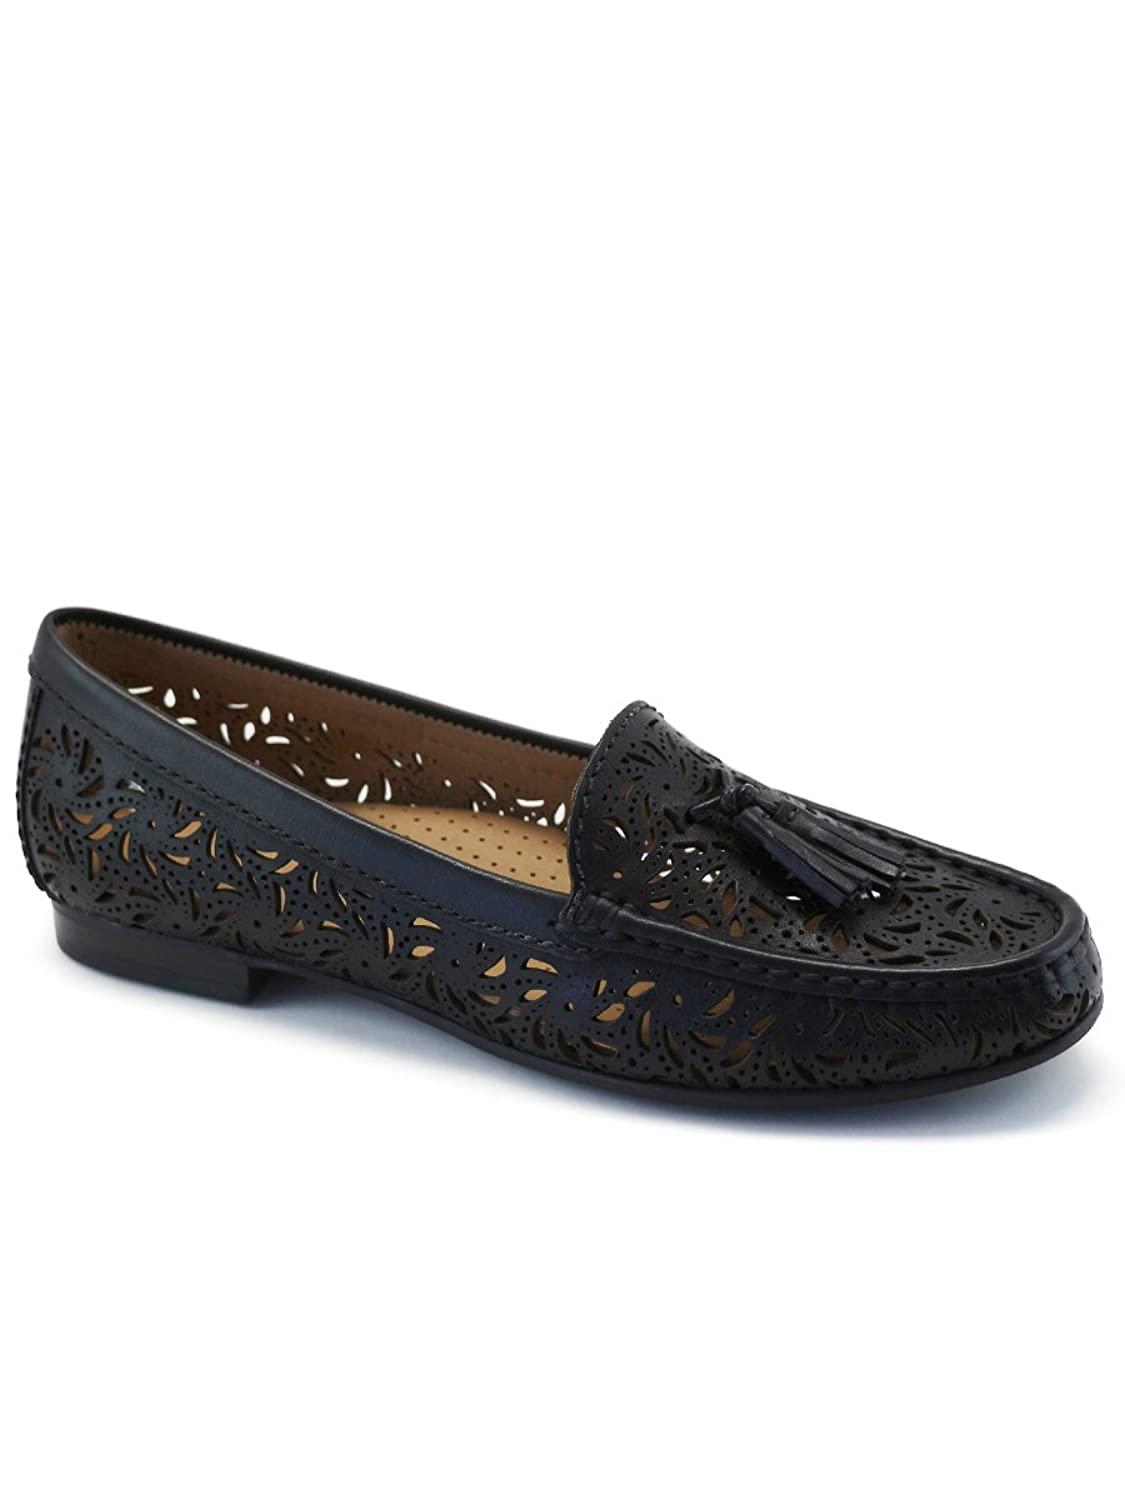 Driver Club USA Women's Fashion Shoes Palm Beach Perforated Tassel Loafer (More Size/Colors Available)